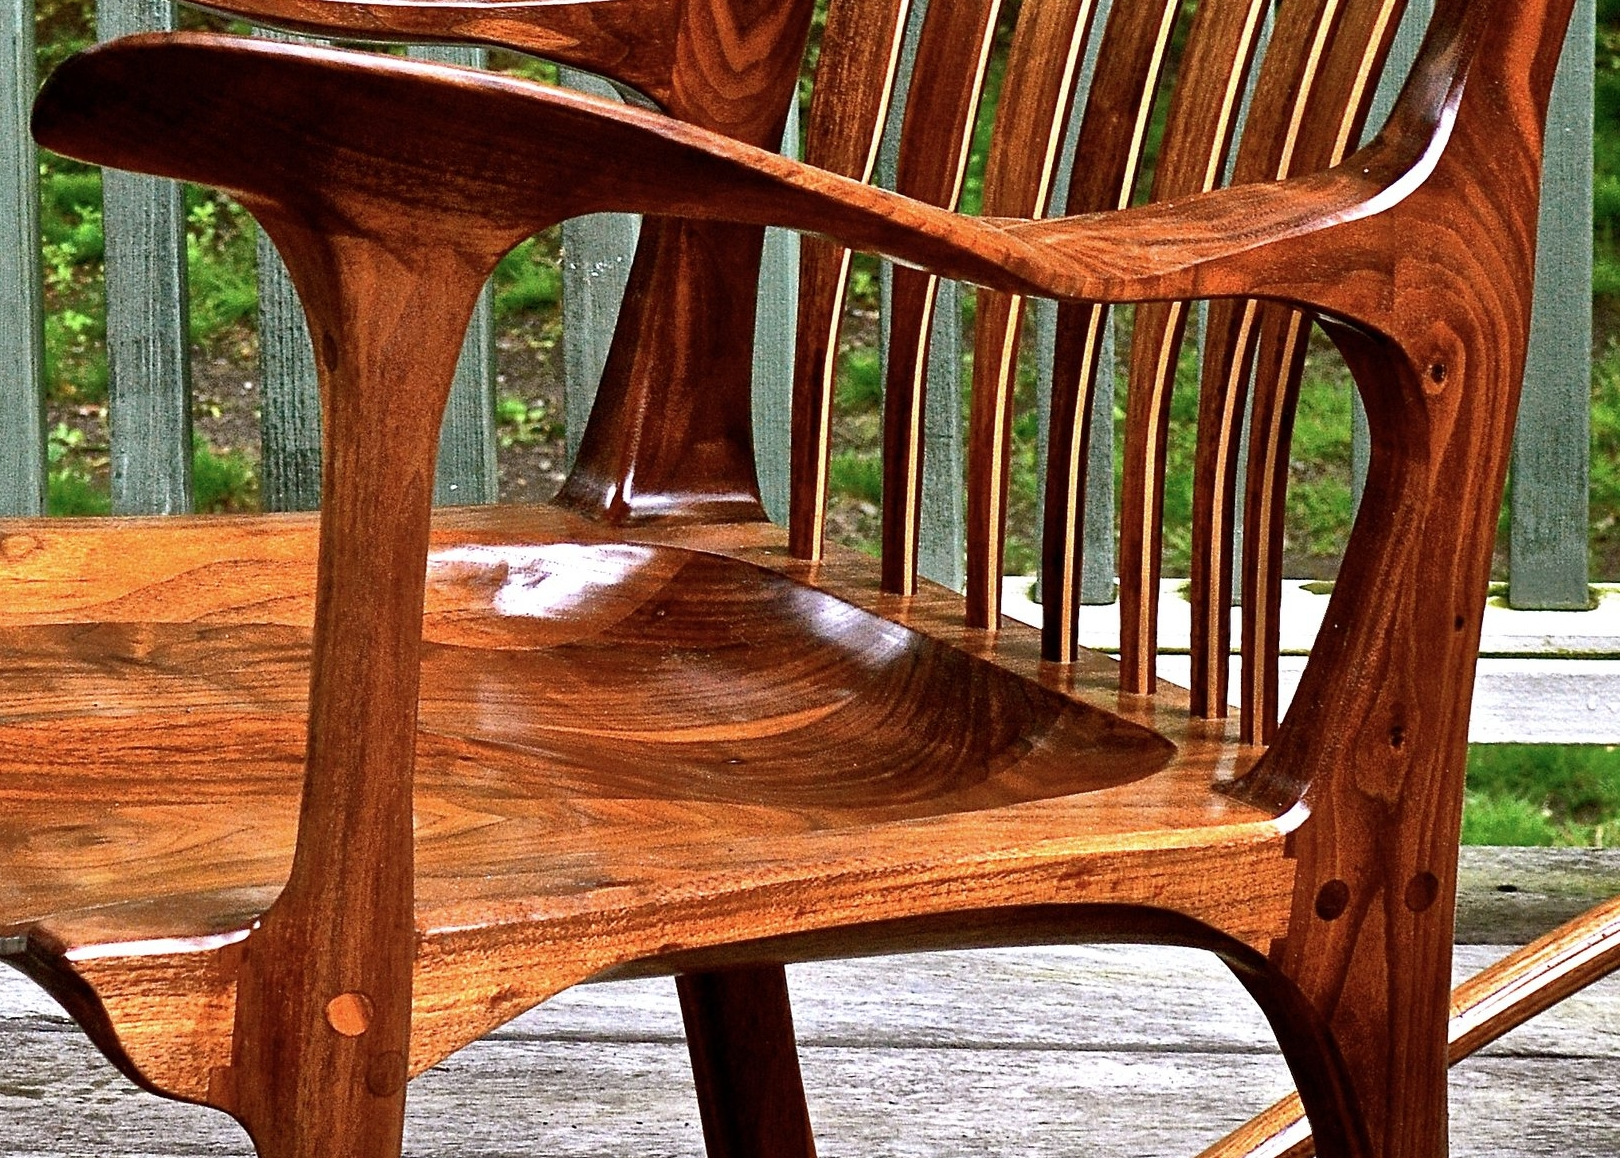 when finished, this joint is exposed and yet disappears, curving gracefully into the seat surface. also of note in this picture is the lines that carry from the legs into the arm.